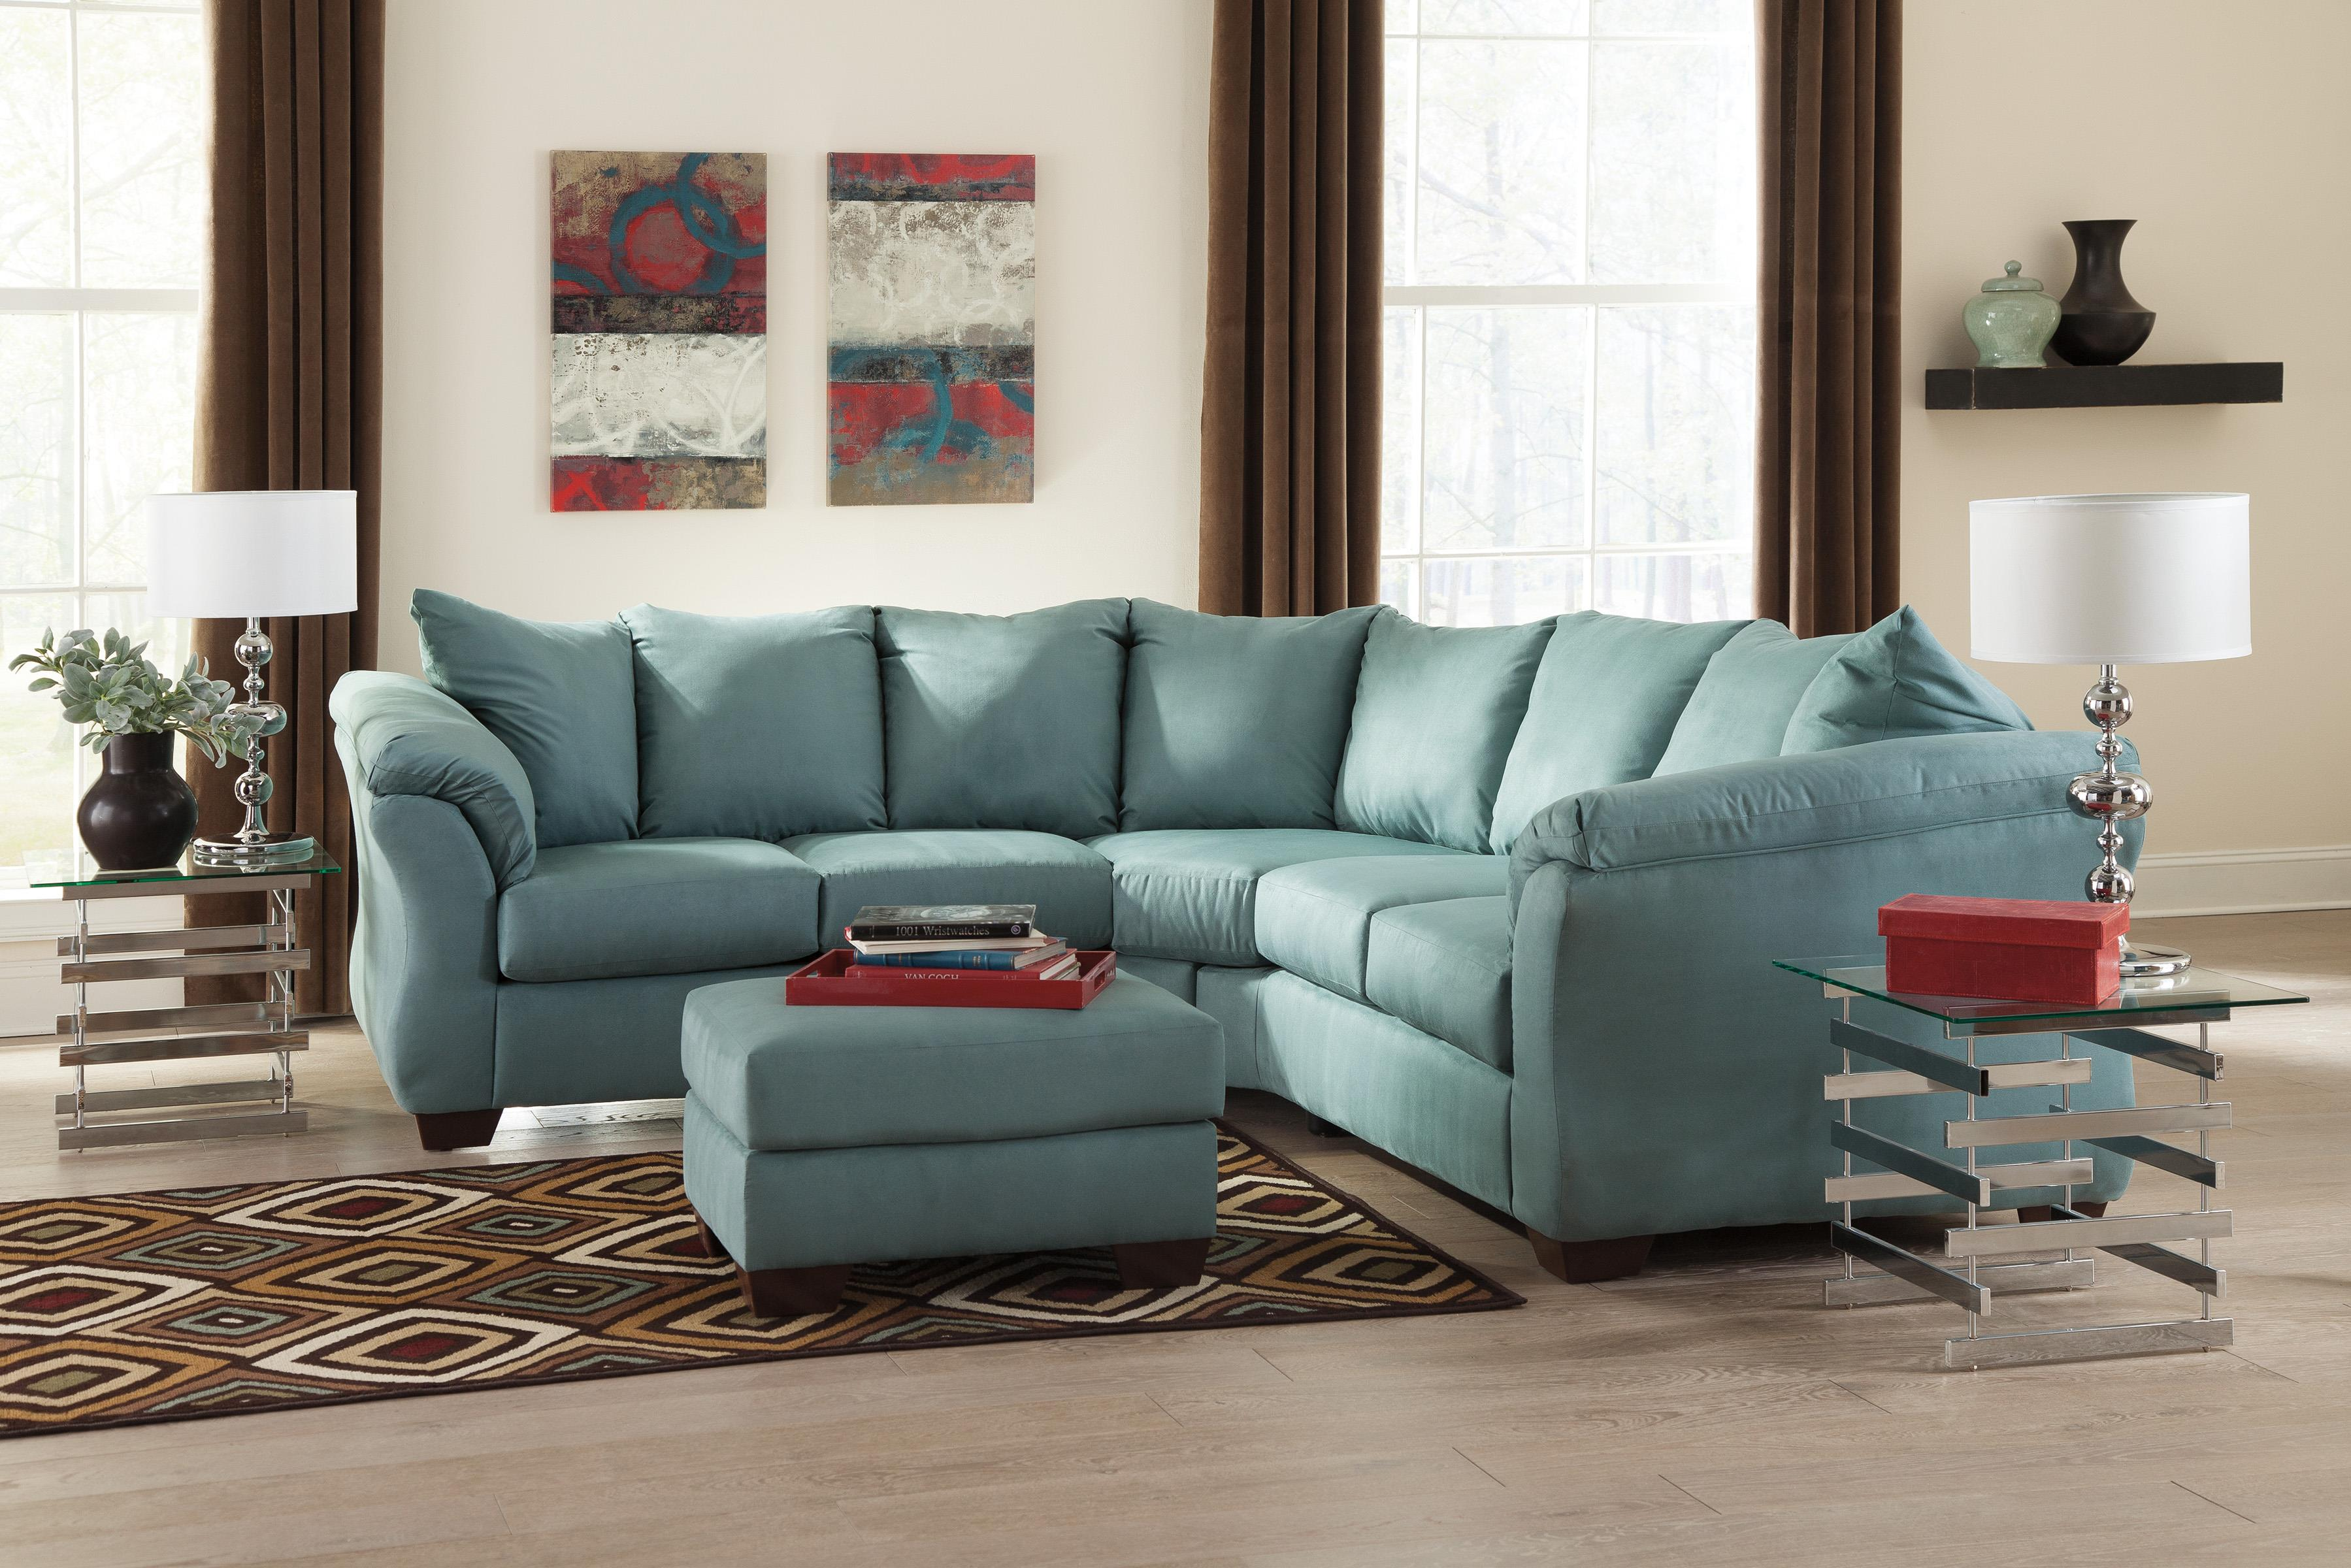 sky couches rotmans furniture sofa pillows ma collections lsg sectional chaise boston by signature ashley worcester sofas with providence vista contemporary item flared back design ri